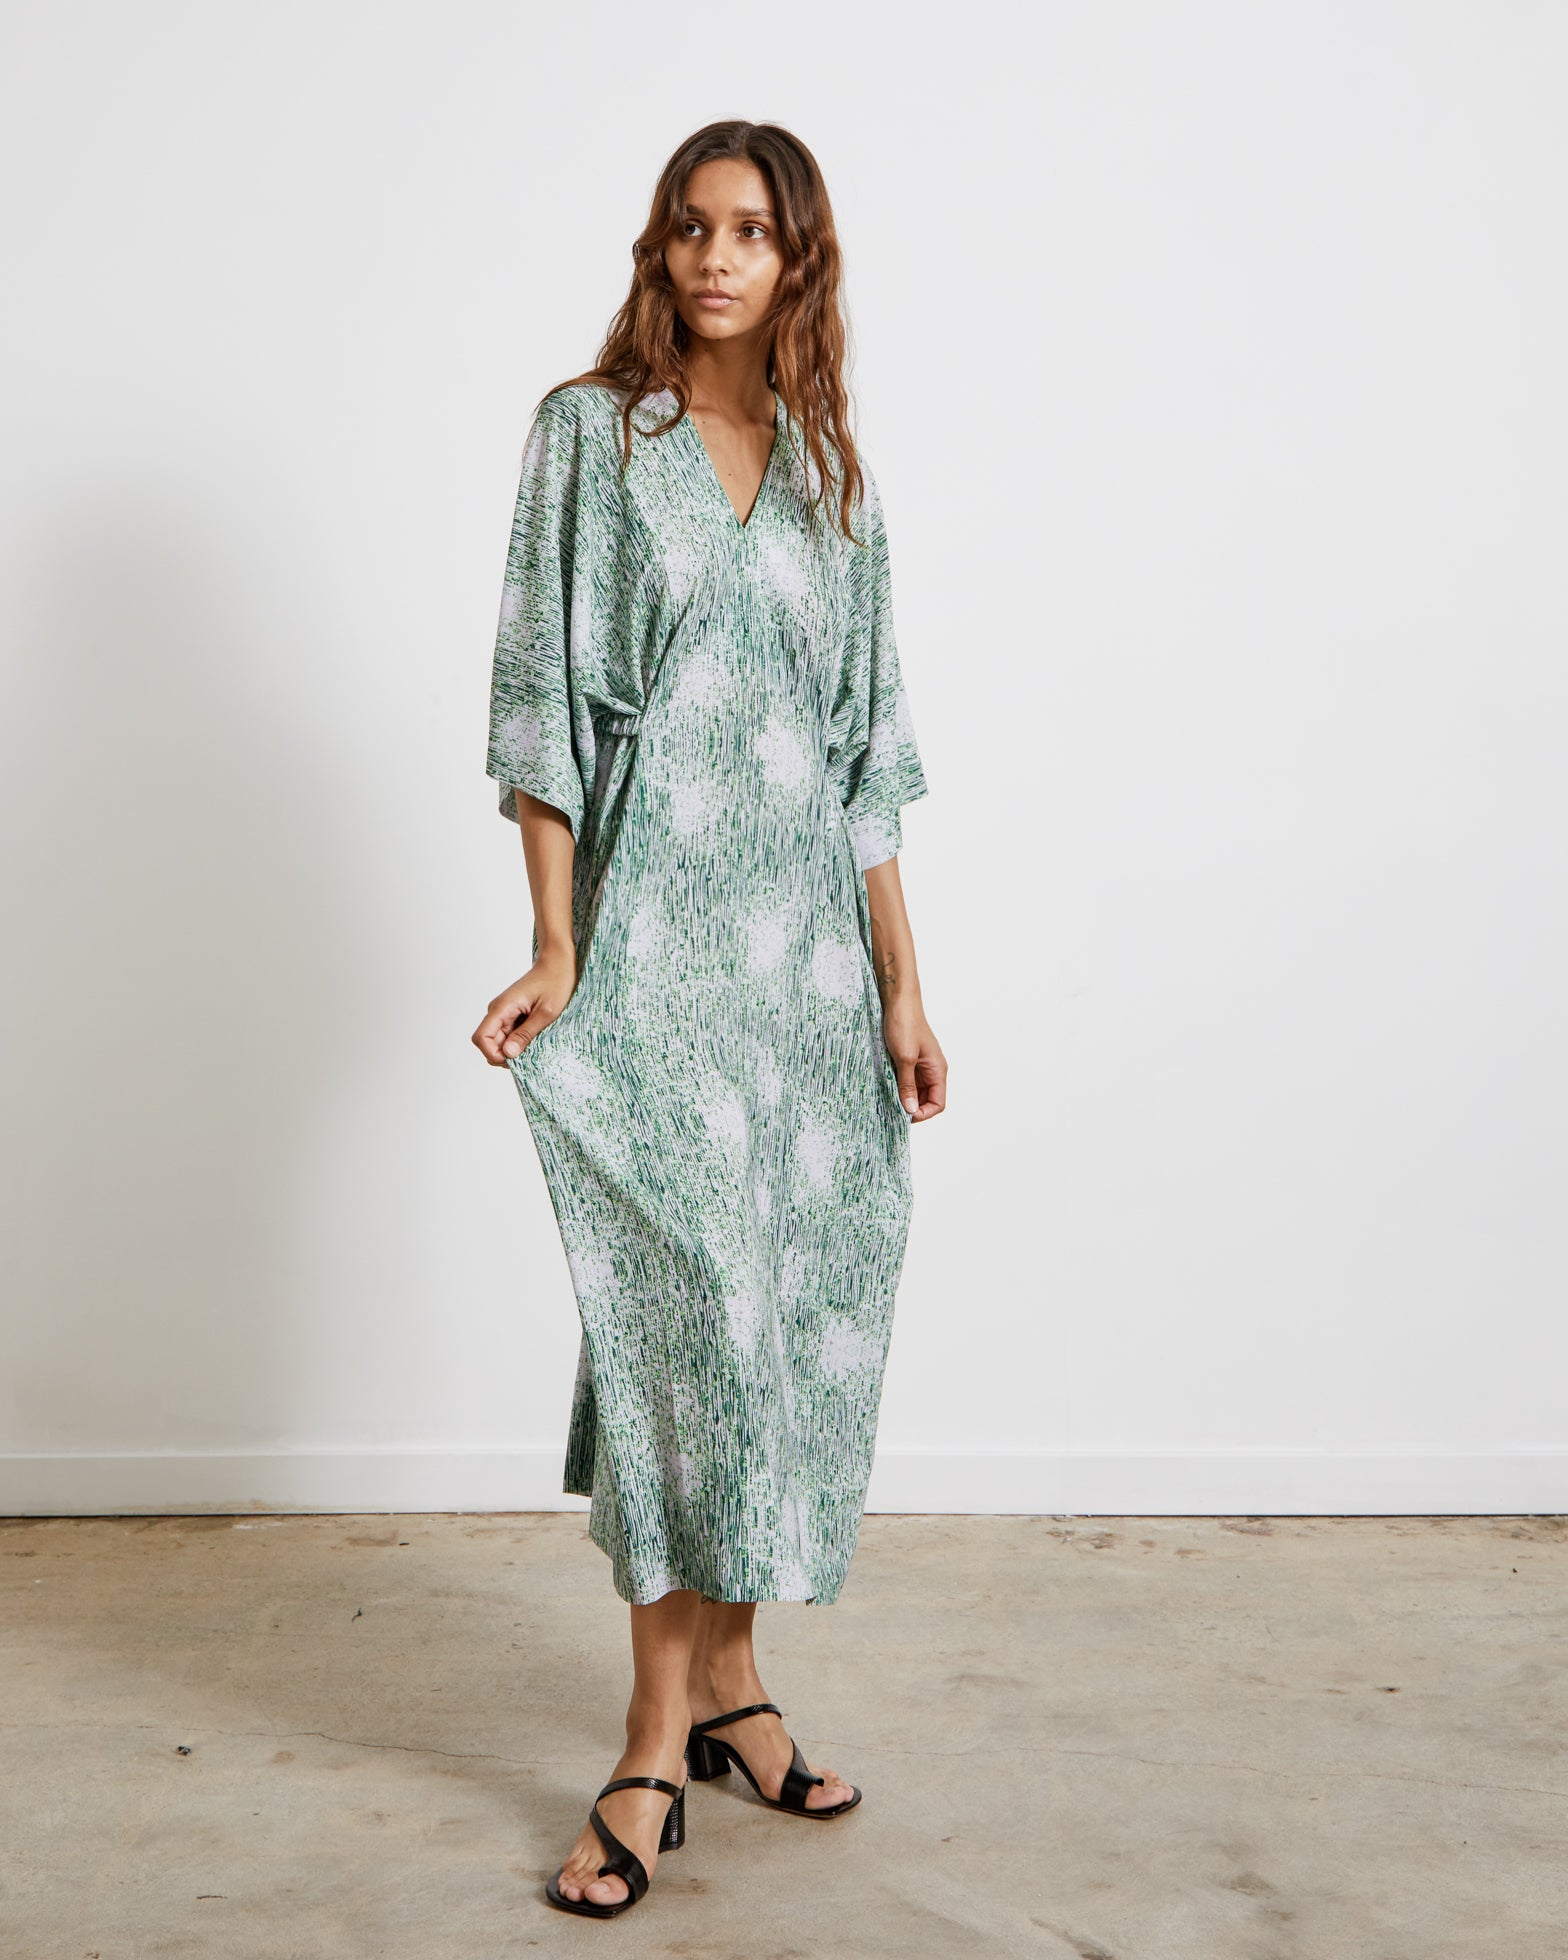 Mohawk General Store | Henrik Vibskov | Jelly Dress in Melted Green